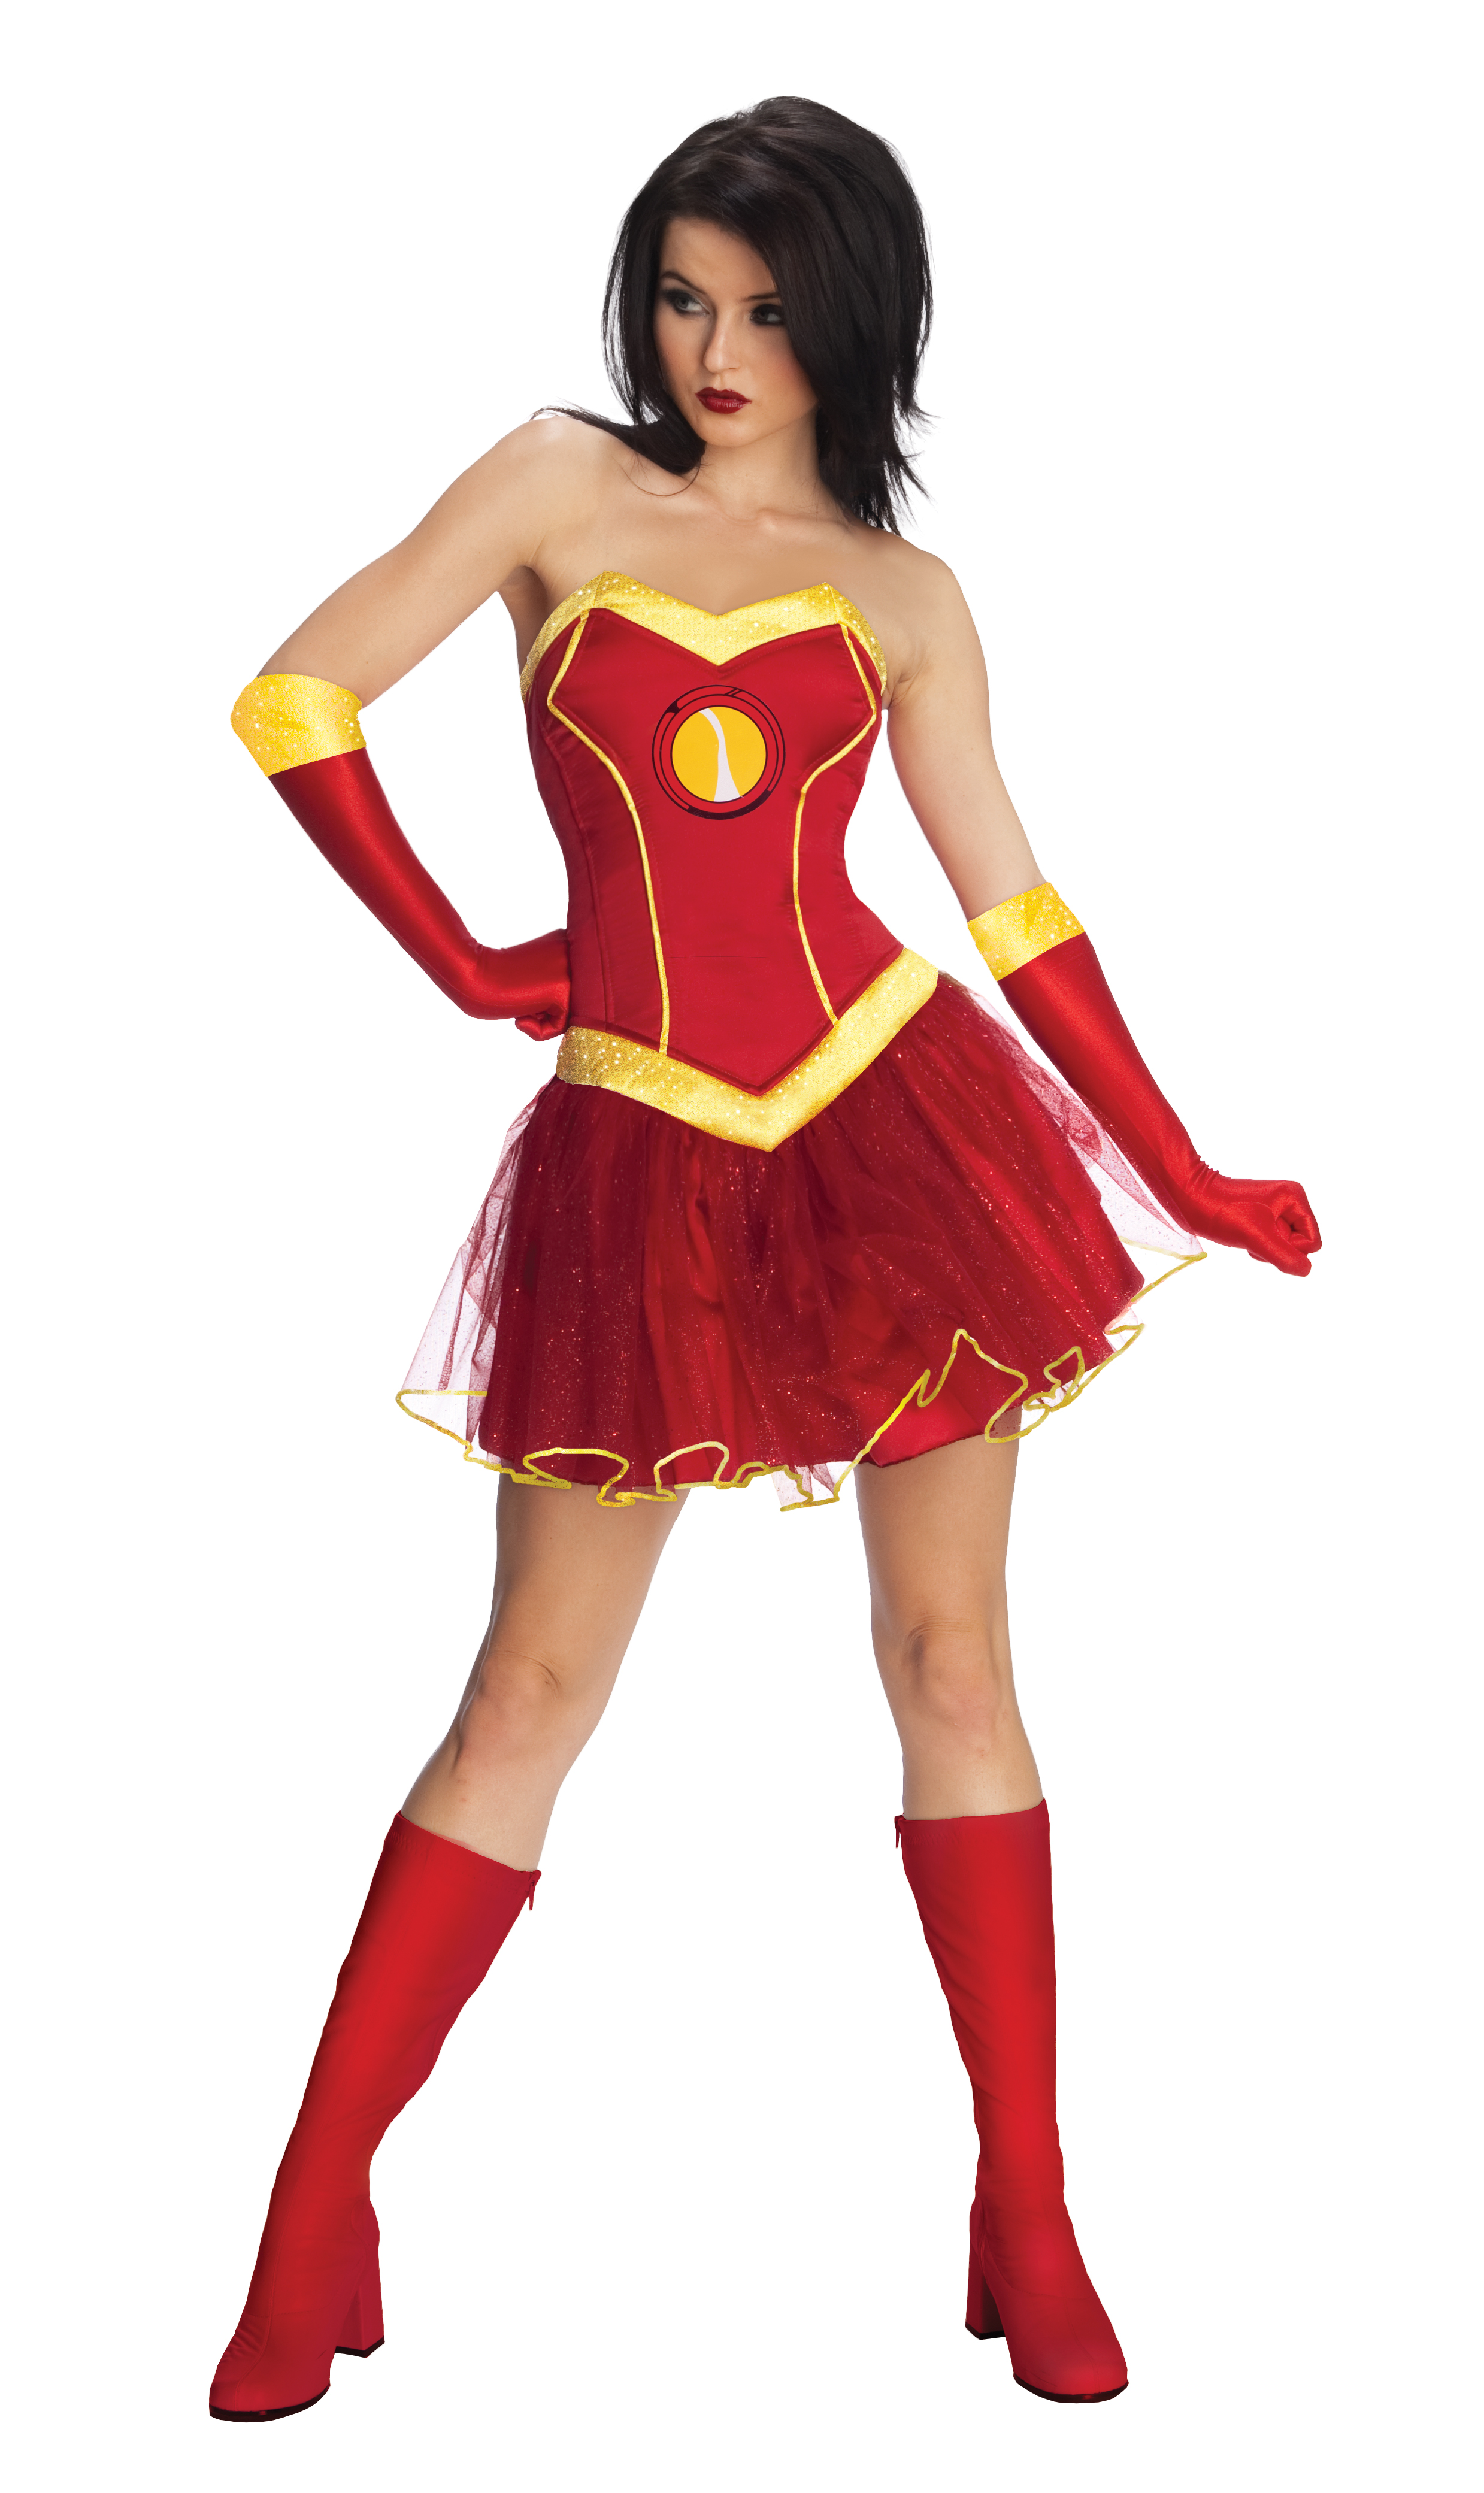 sc 1 st  Walmart & Adult Female Iron Man Rescue Costume by Rubies 820013 - Walmart.com